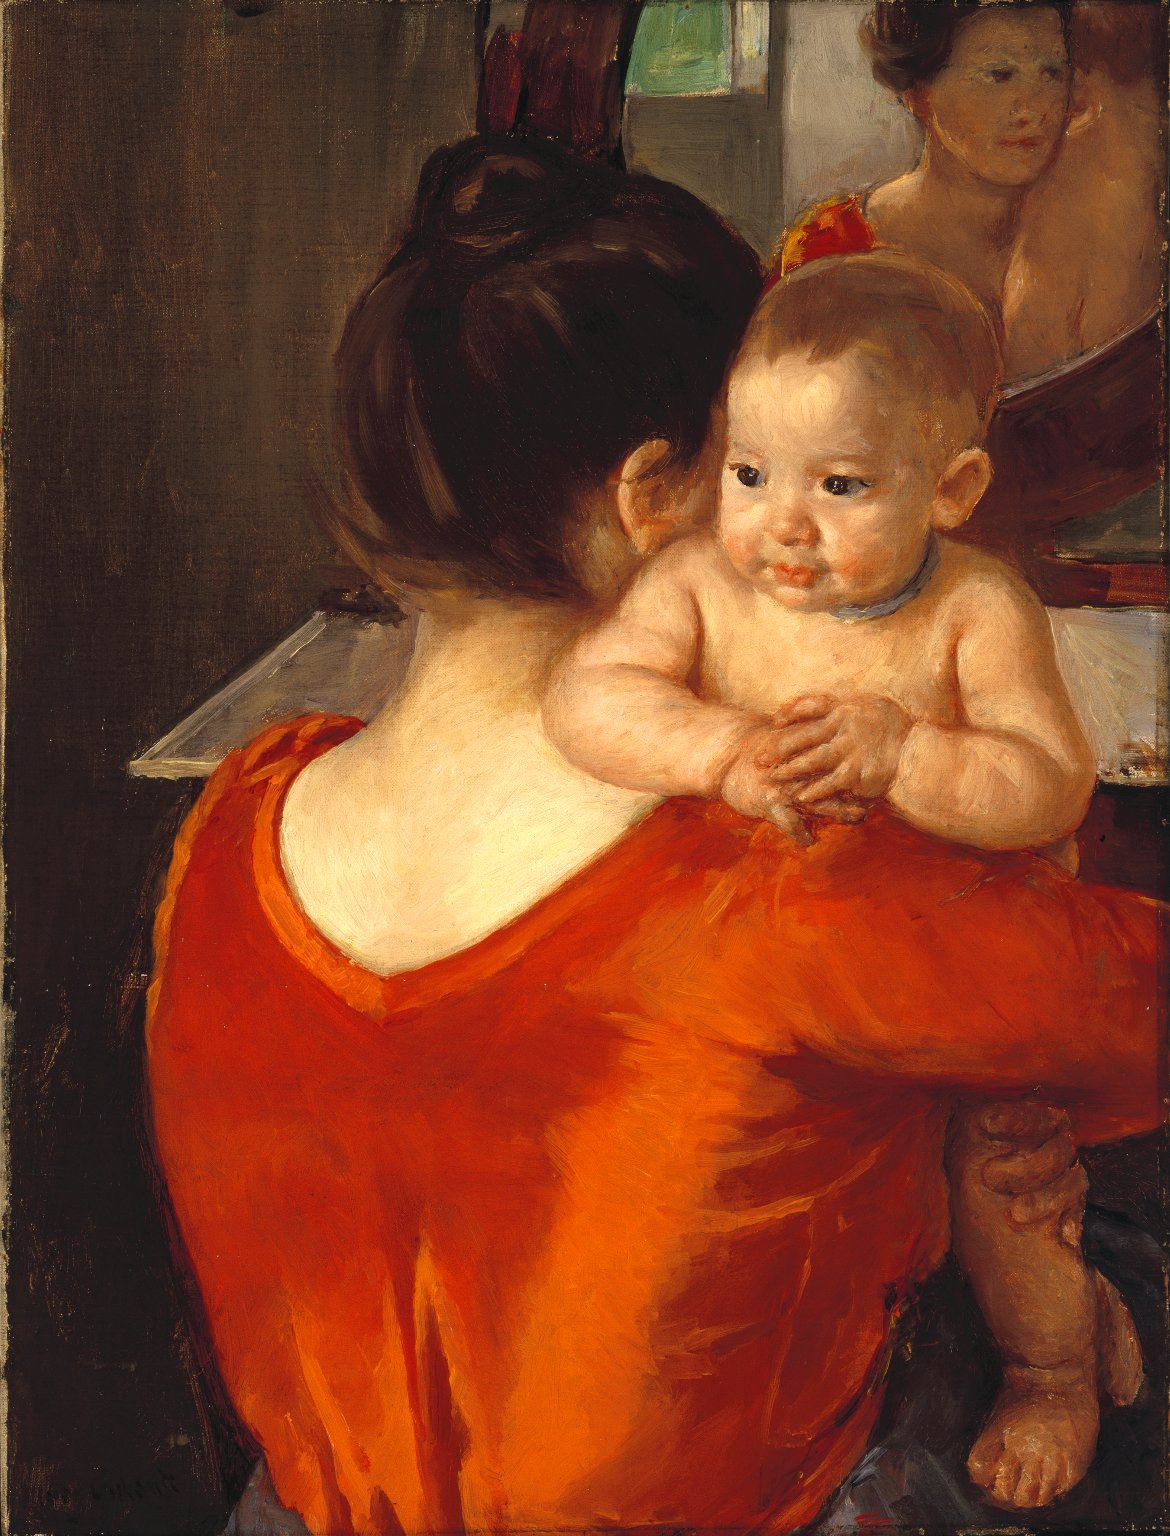 Brooklyn Museum: Woman in a Red Bodice and Her Child